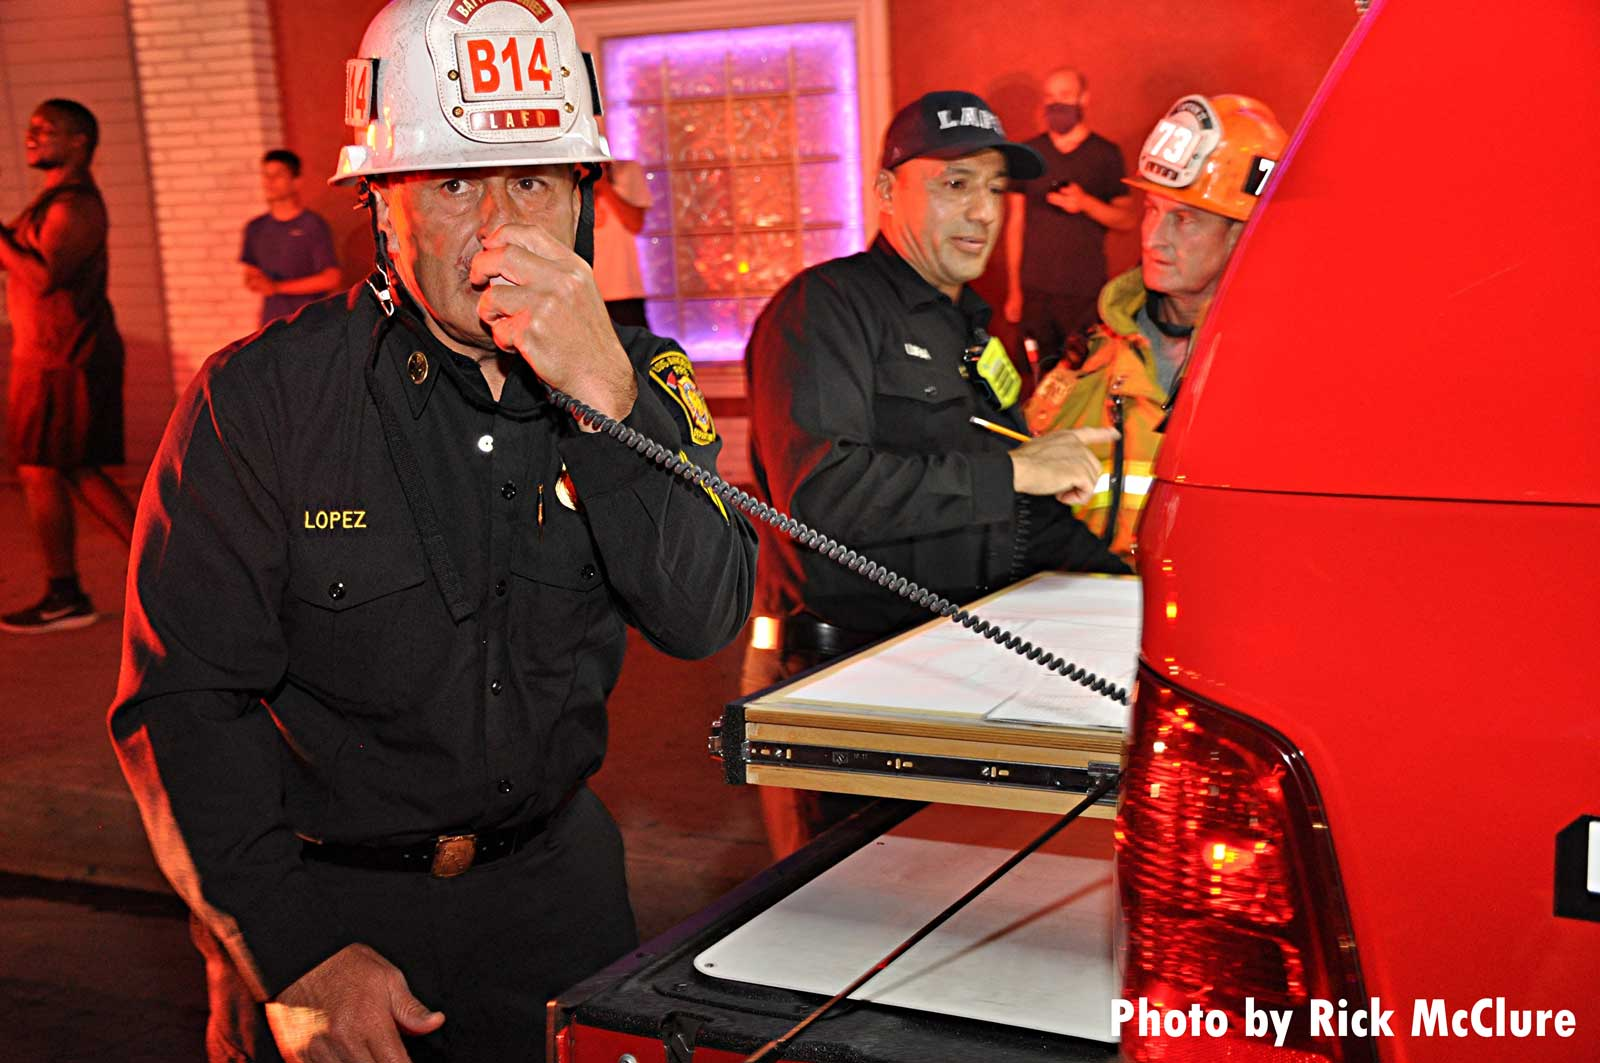 Command on scene at LAFD fire